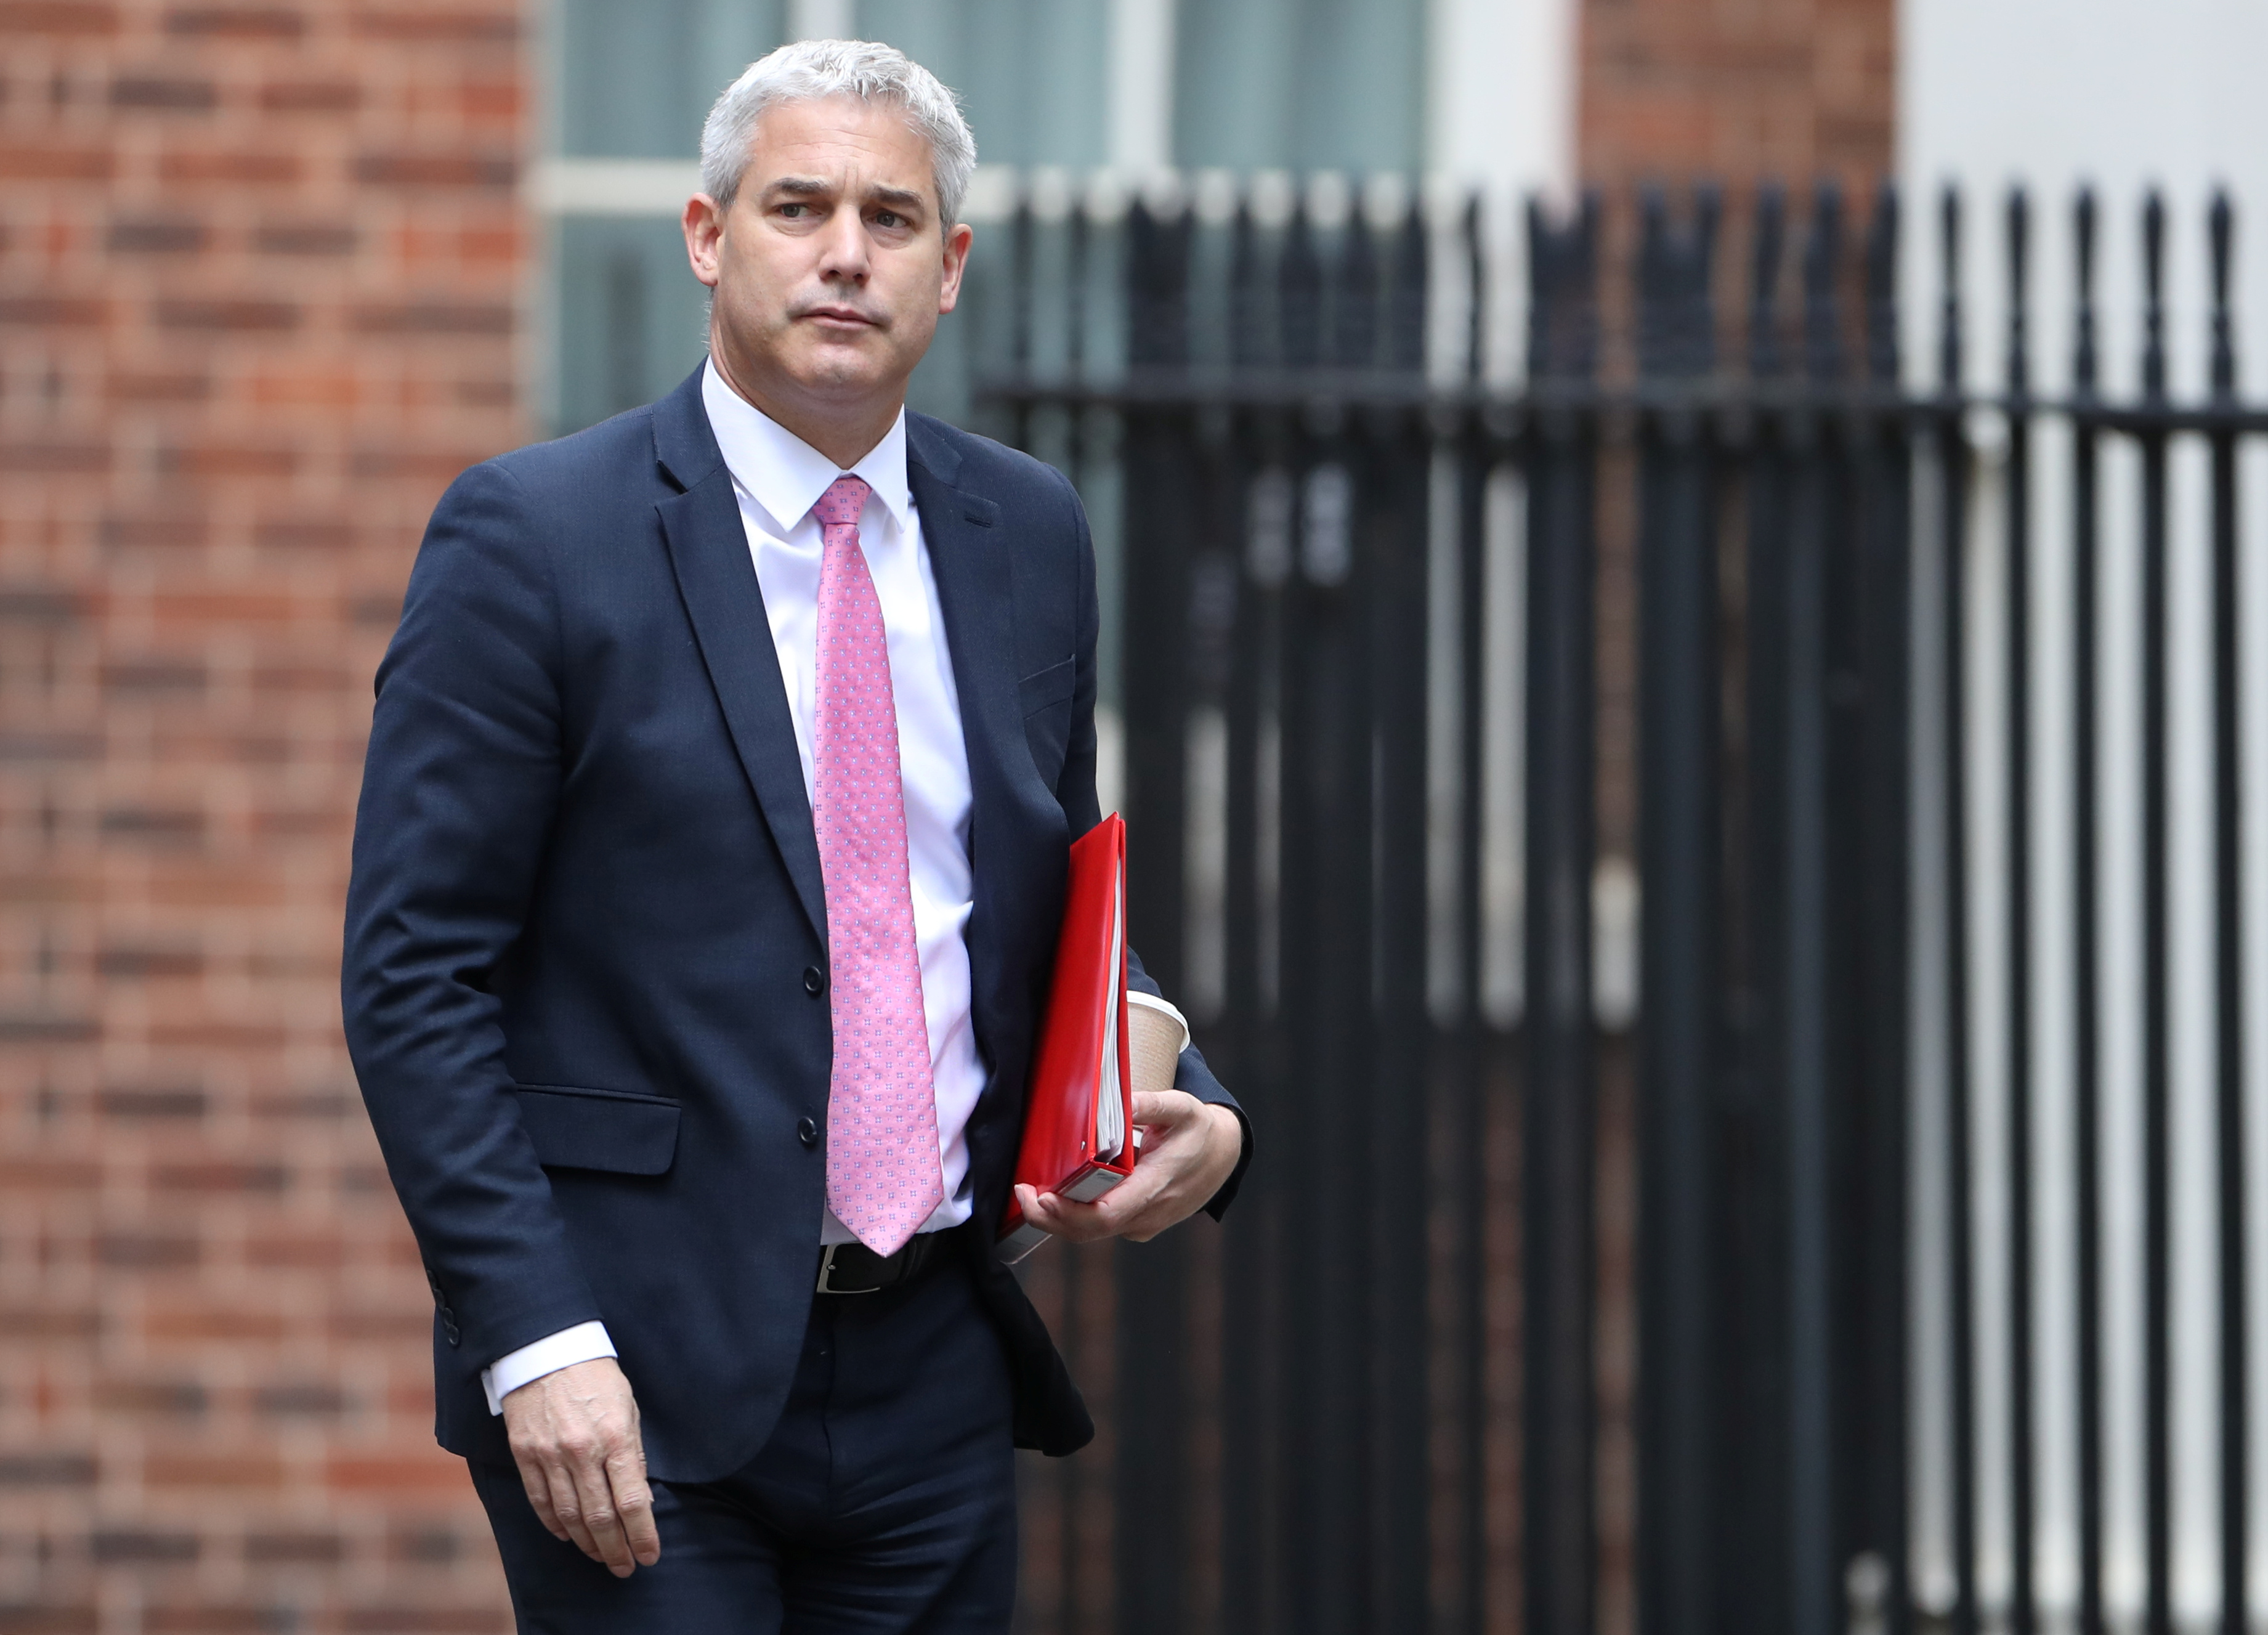 Brexit minister Barclay says UK making progress on exit deal, but significant work remains